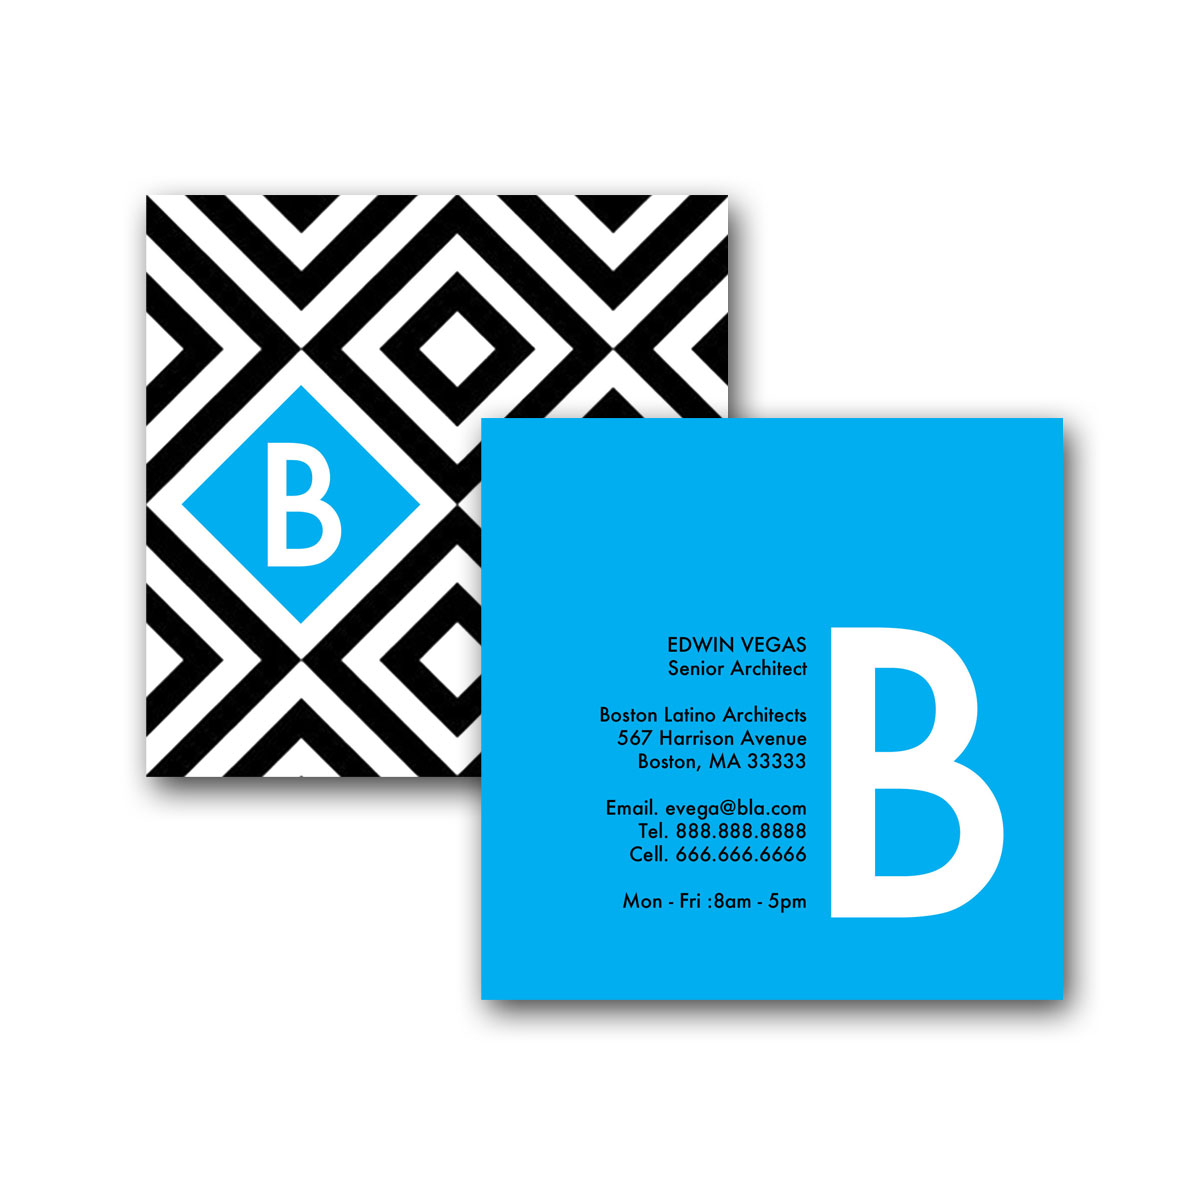 Squares in a square square business card creative solutions studio home business cards square business card designs squares in a square square business card magicingreecefo Image collections